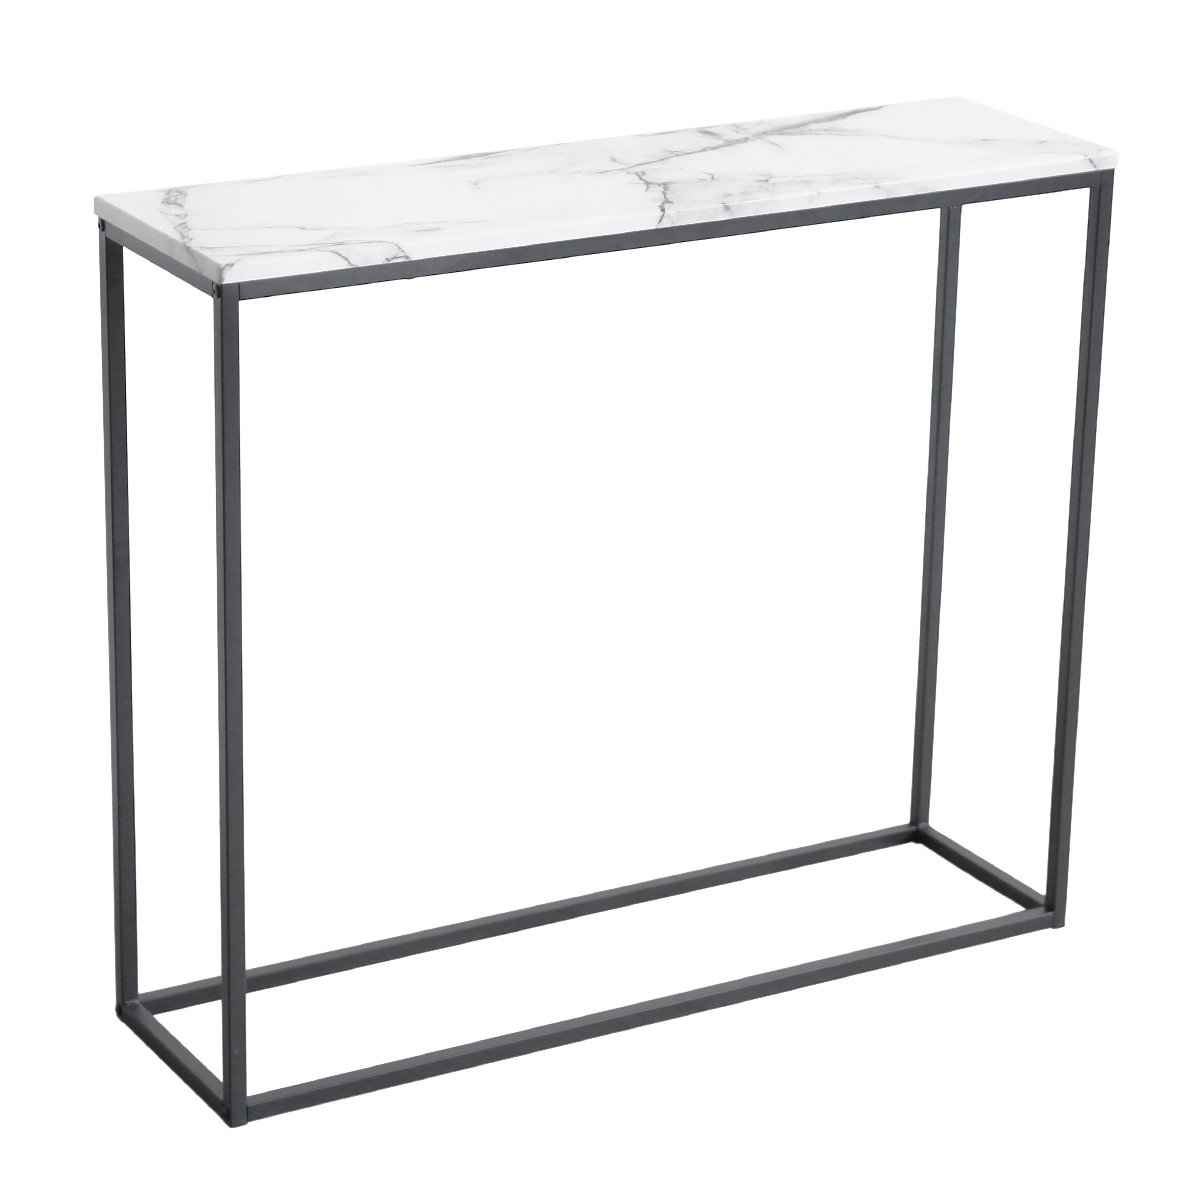 roomfitters Sofa Console Table Marble Print Top Metal Frame Accent White Narrow Foyer Hall Table,White by Roomfitters